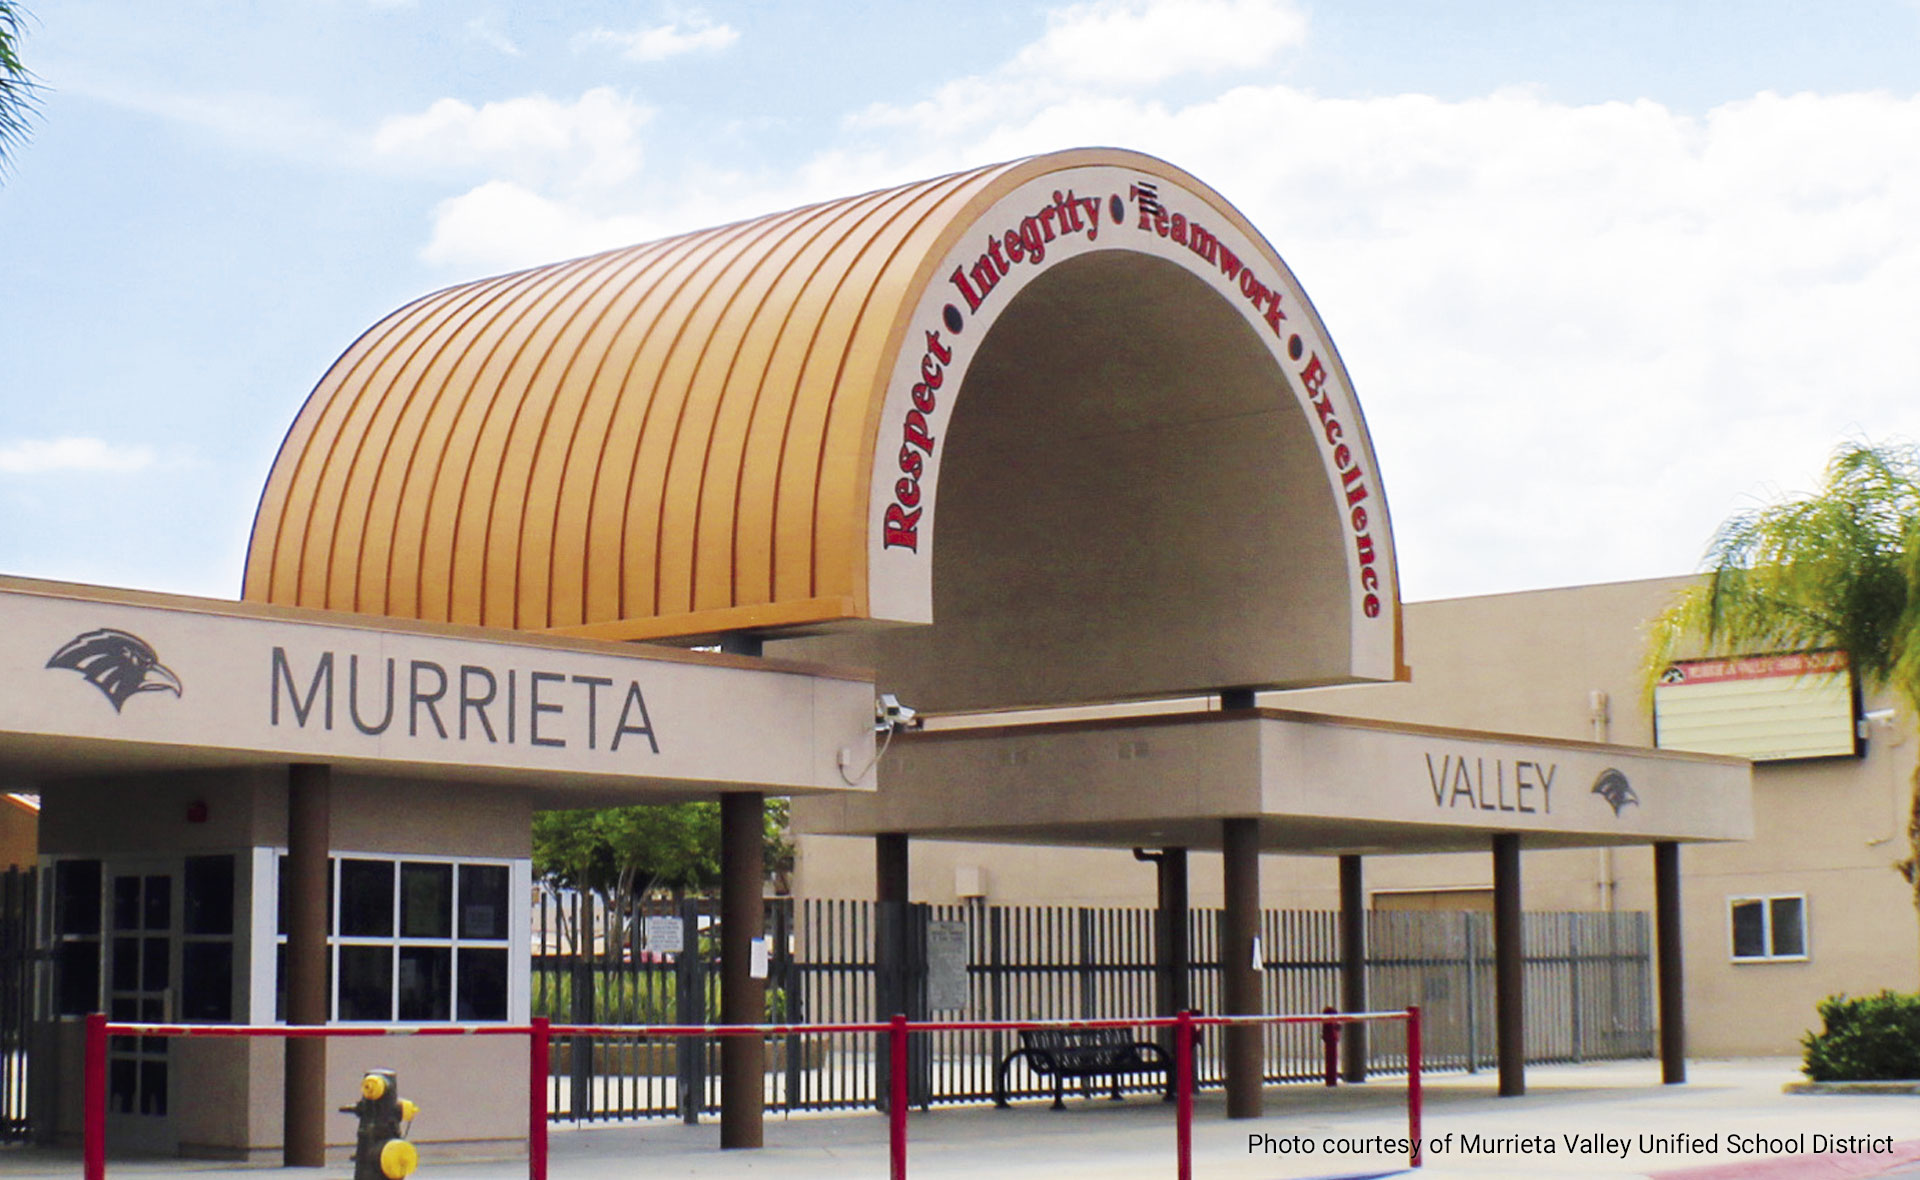 Murrieta Valley USD facility. Photo courtesy of Murrieta Valley USD.